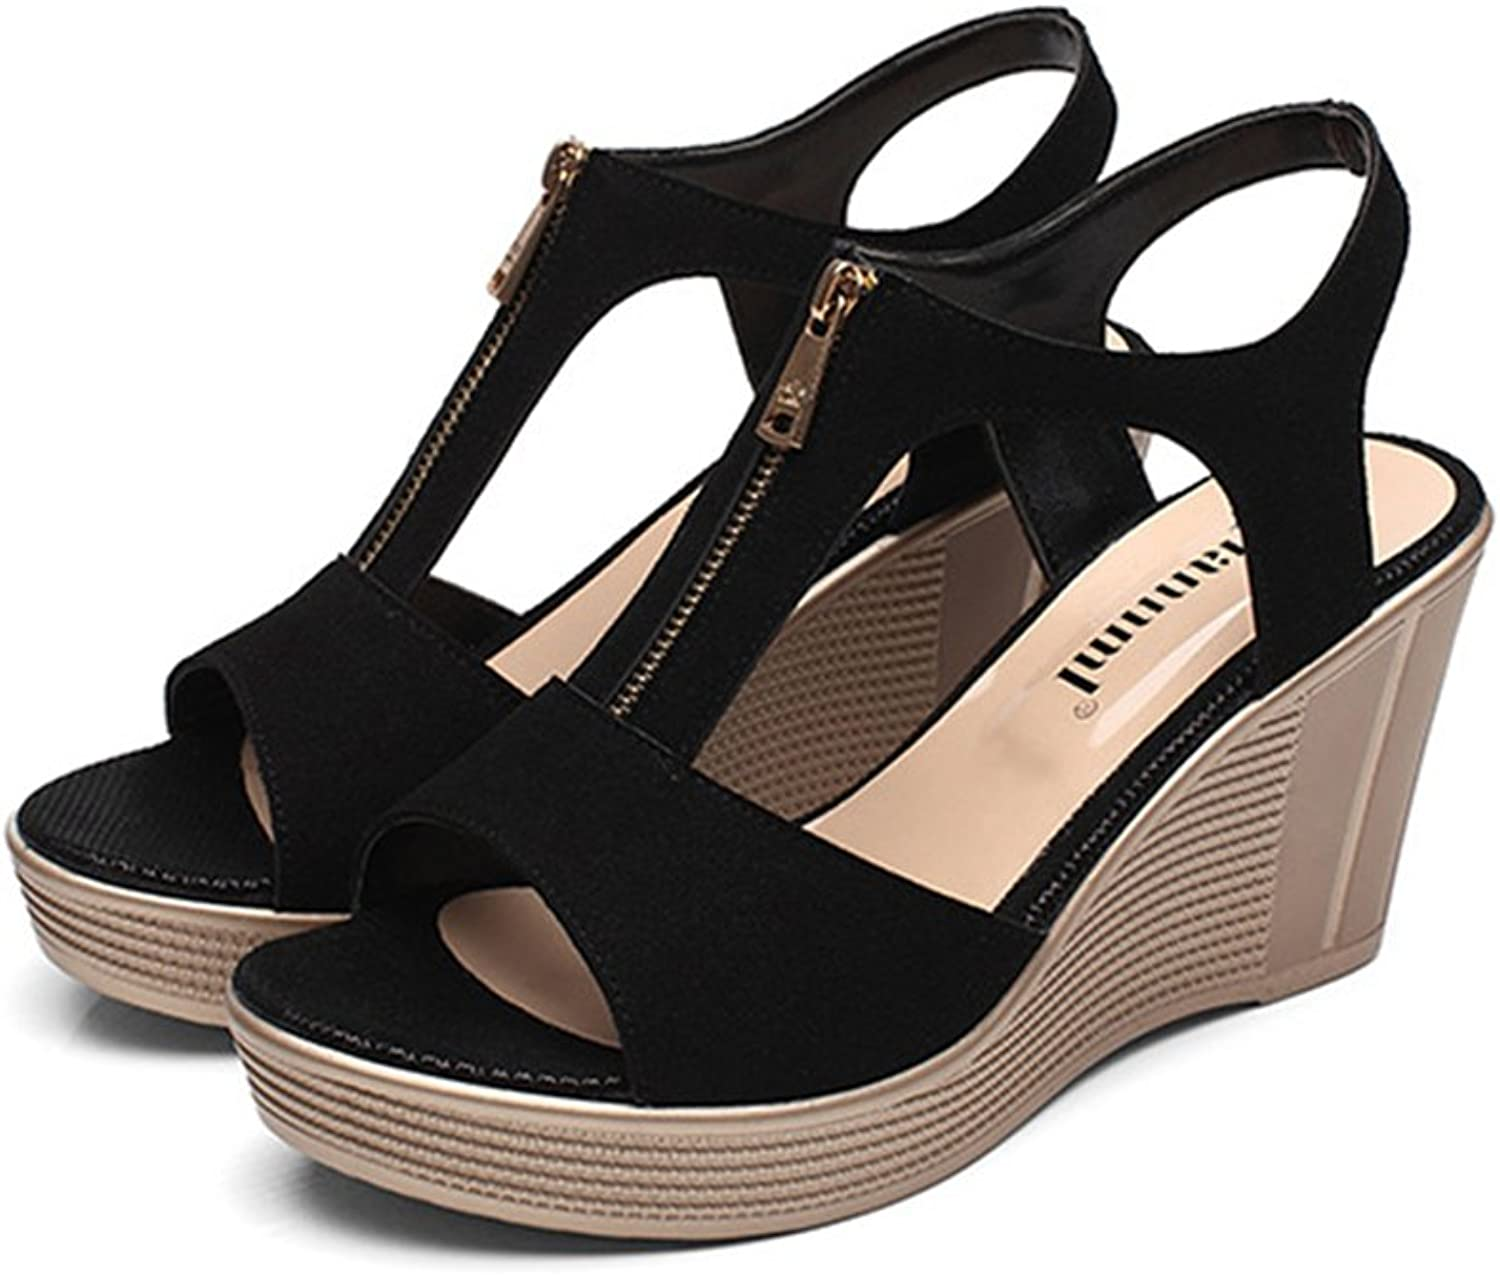 Tuoup Womens Leather Zipper Summer Wedge Sandals Sandles